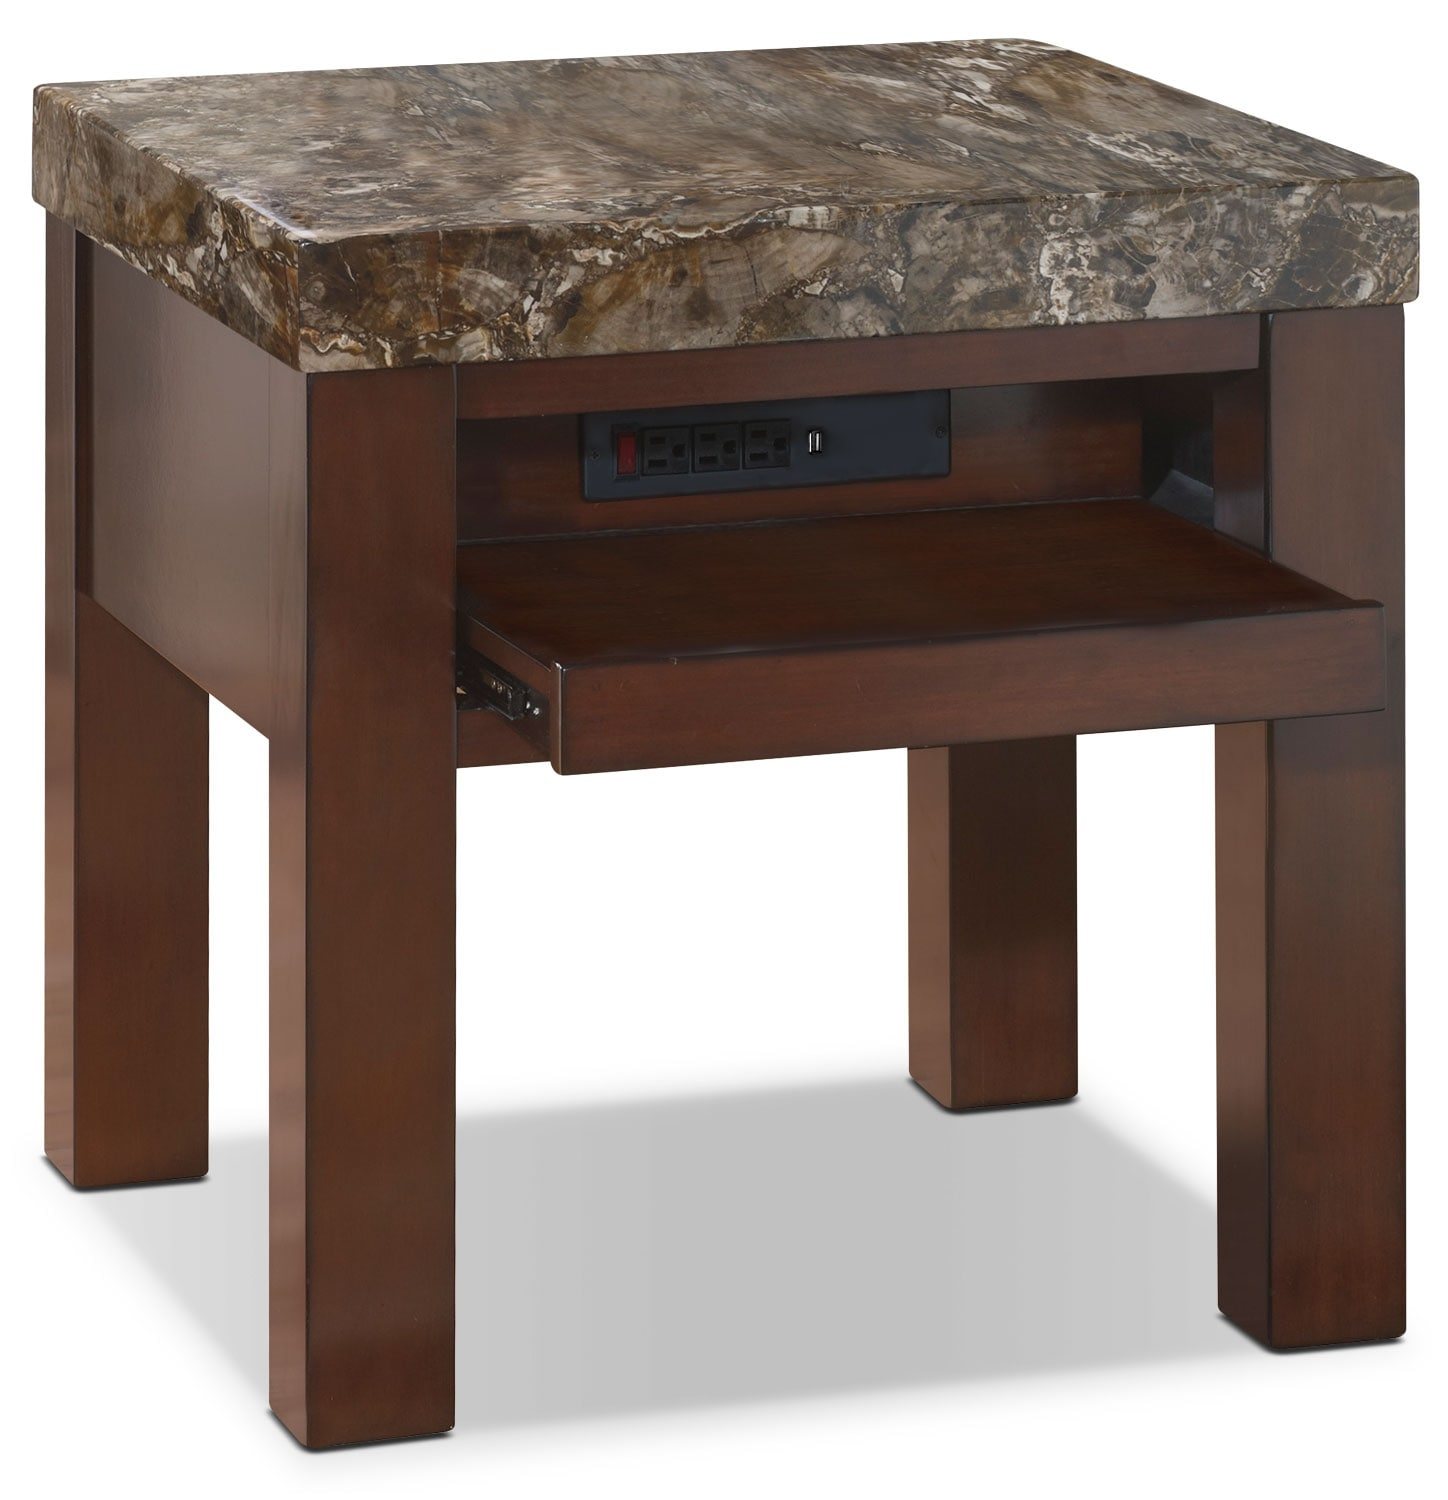 Accent and Occasional Furniture - Emerson End Table with Pull-Out Tray